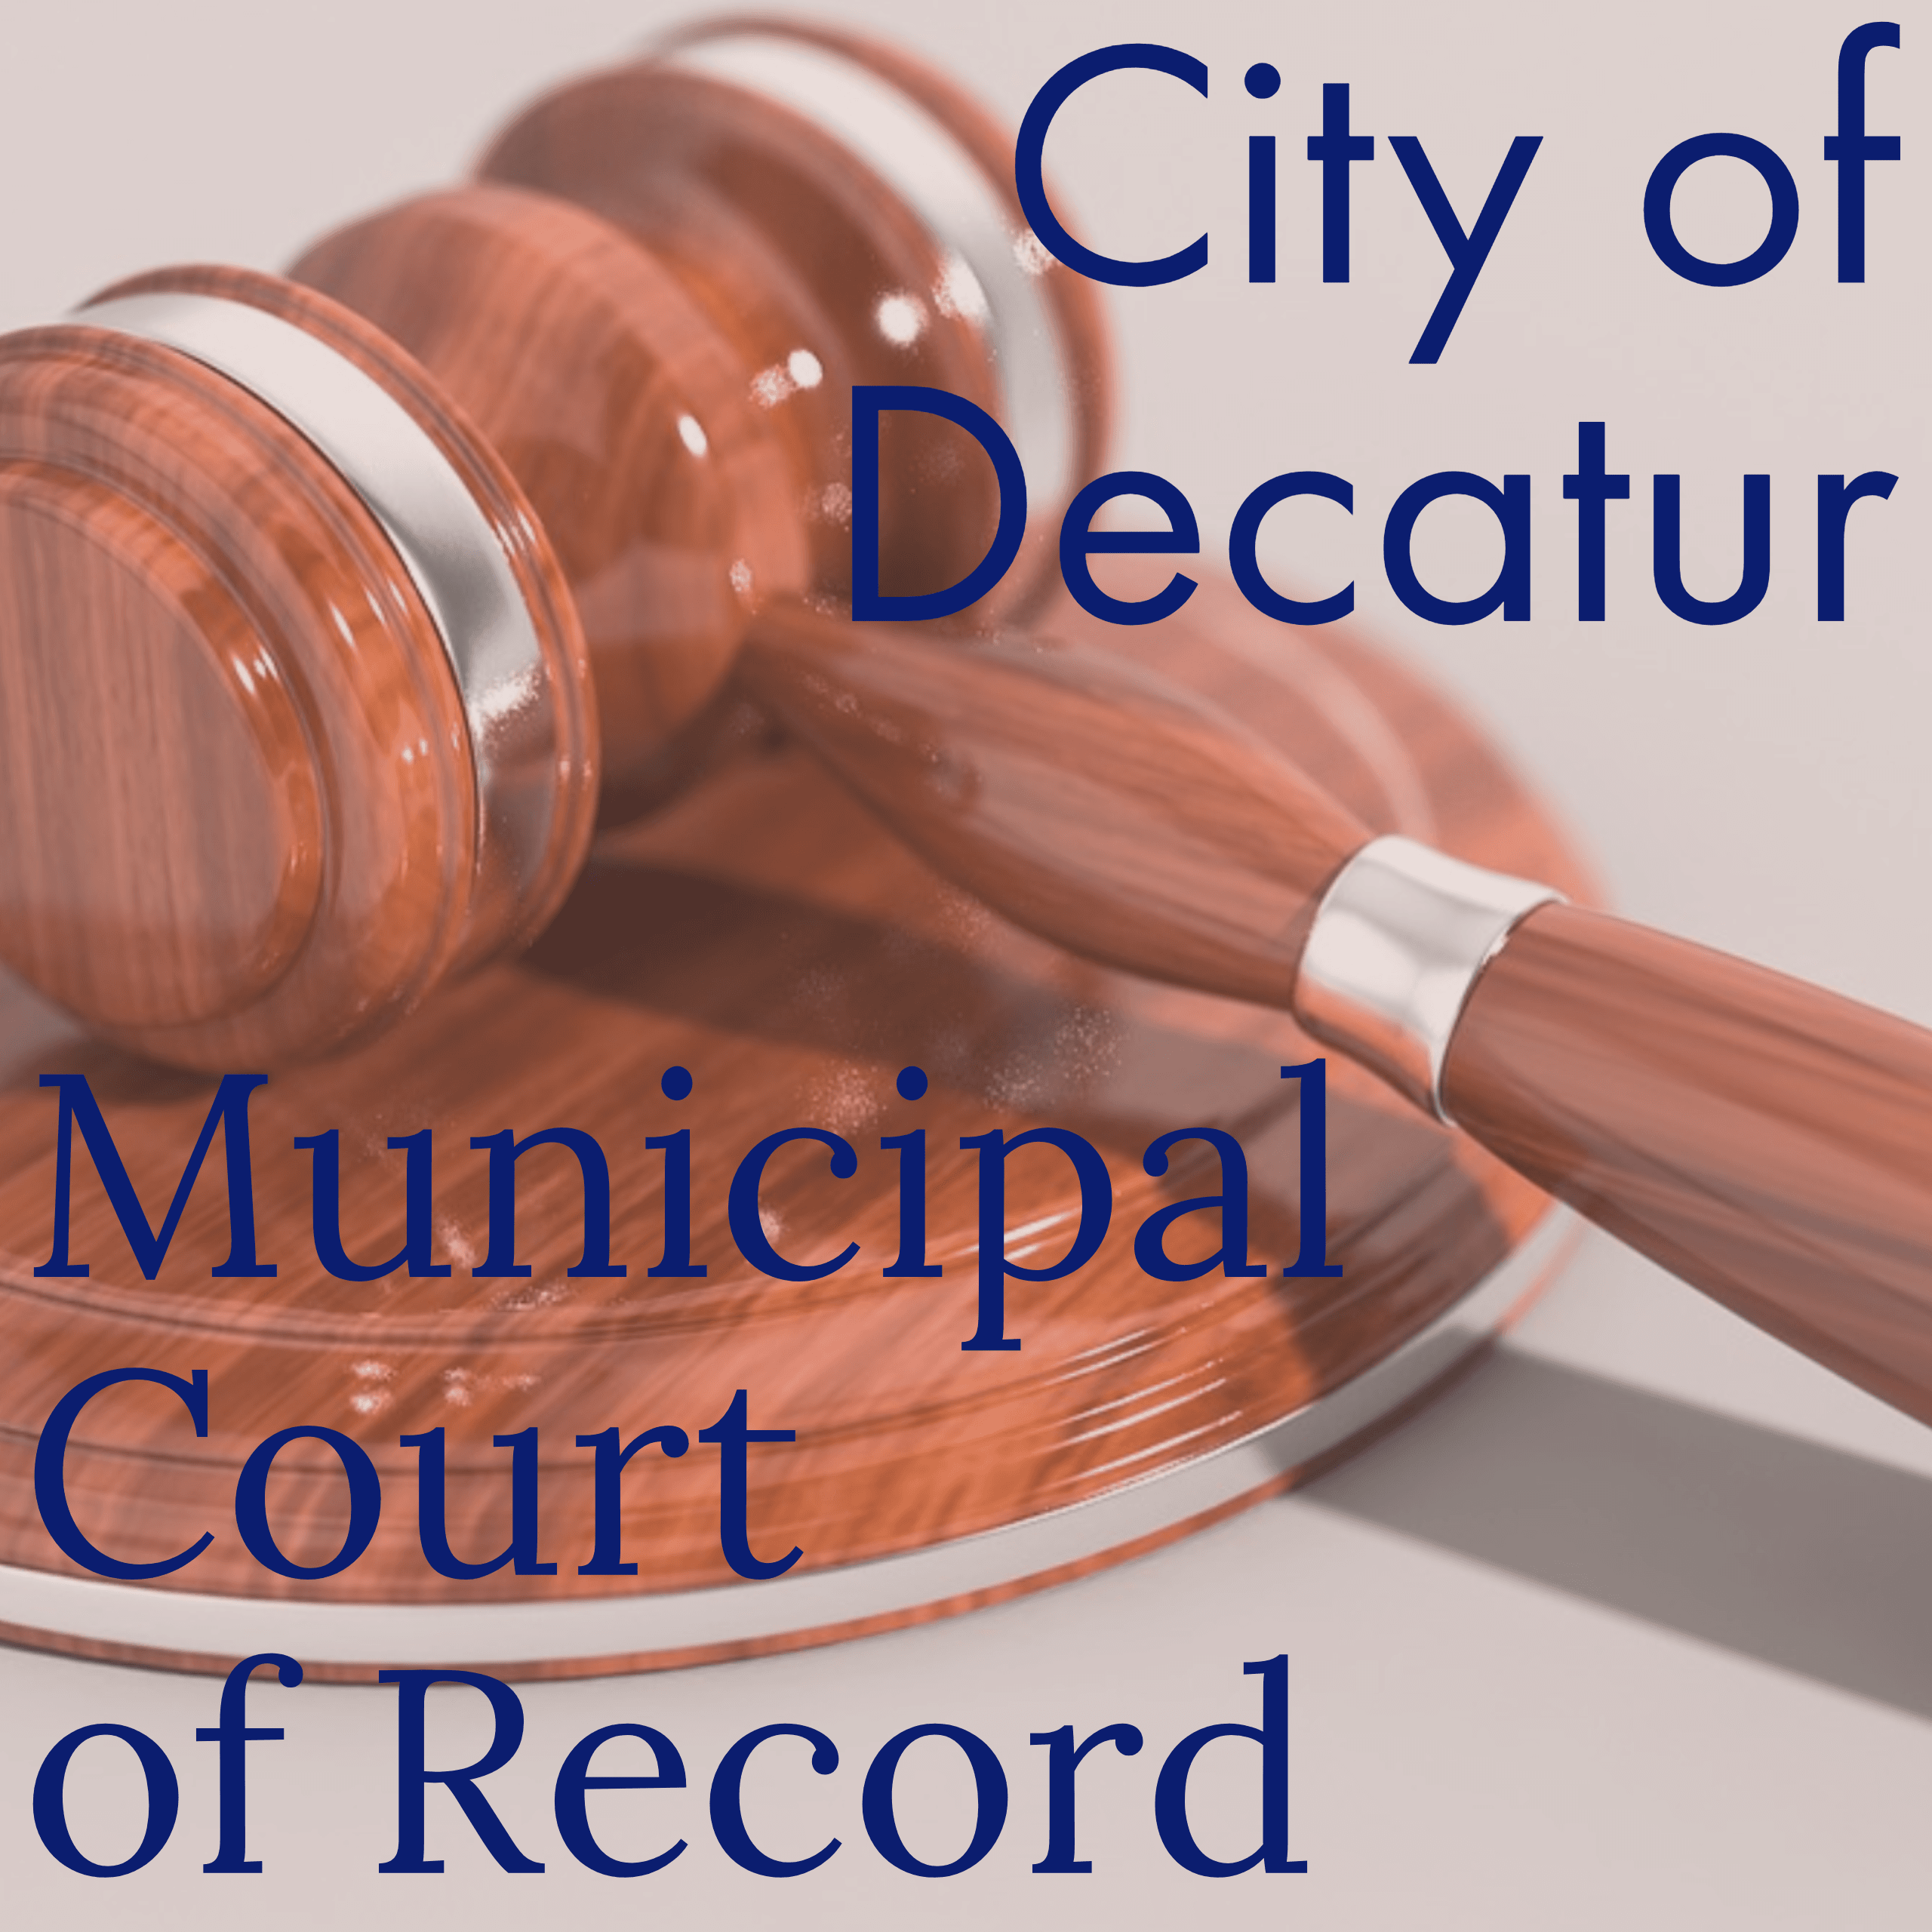 municipal court of record